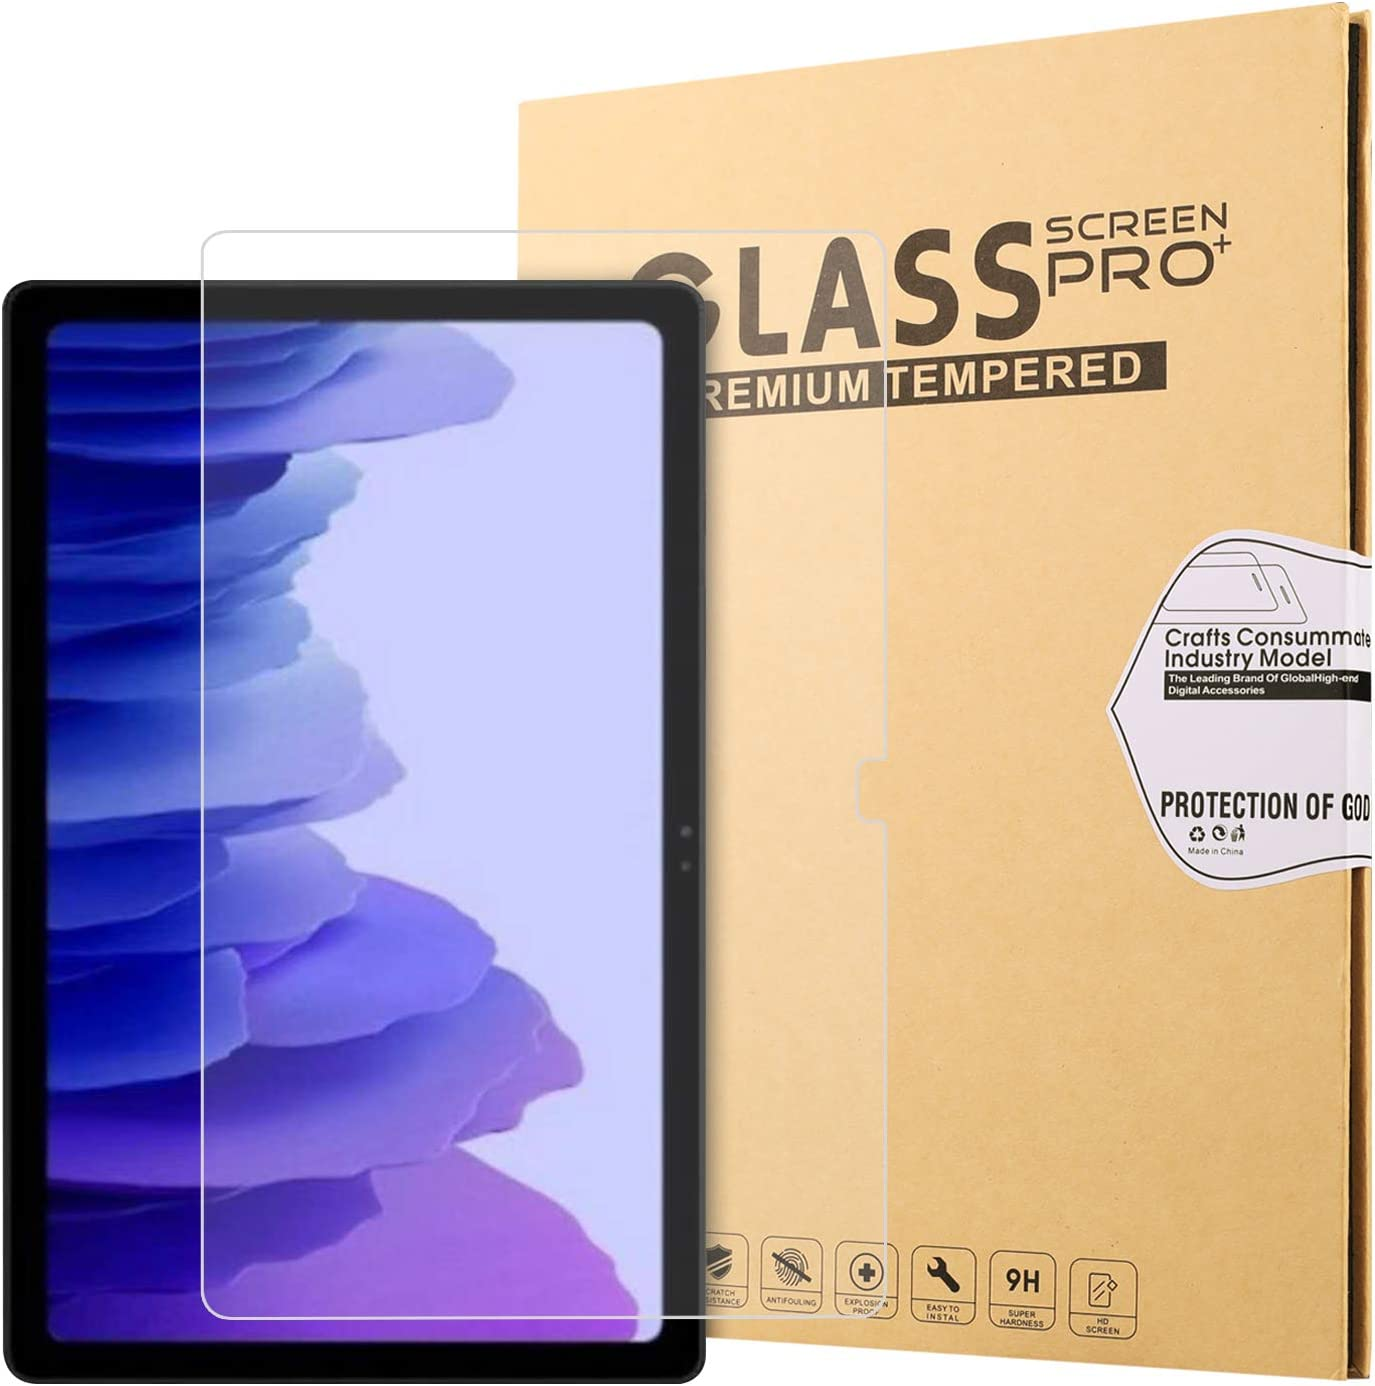 Ratesell Samsung Galaxy Tab S7 Screen Protector, Tempered Glass Screen Protector, 9H Hardness/Bubble Free/High Response for Samsung Galaxy Tab S7 Tablet